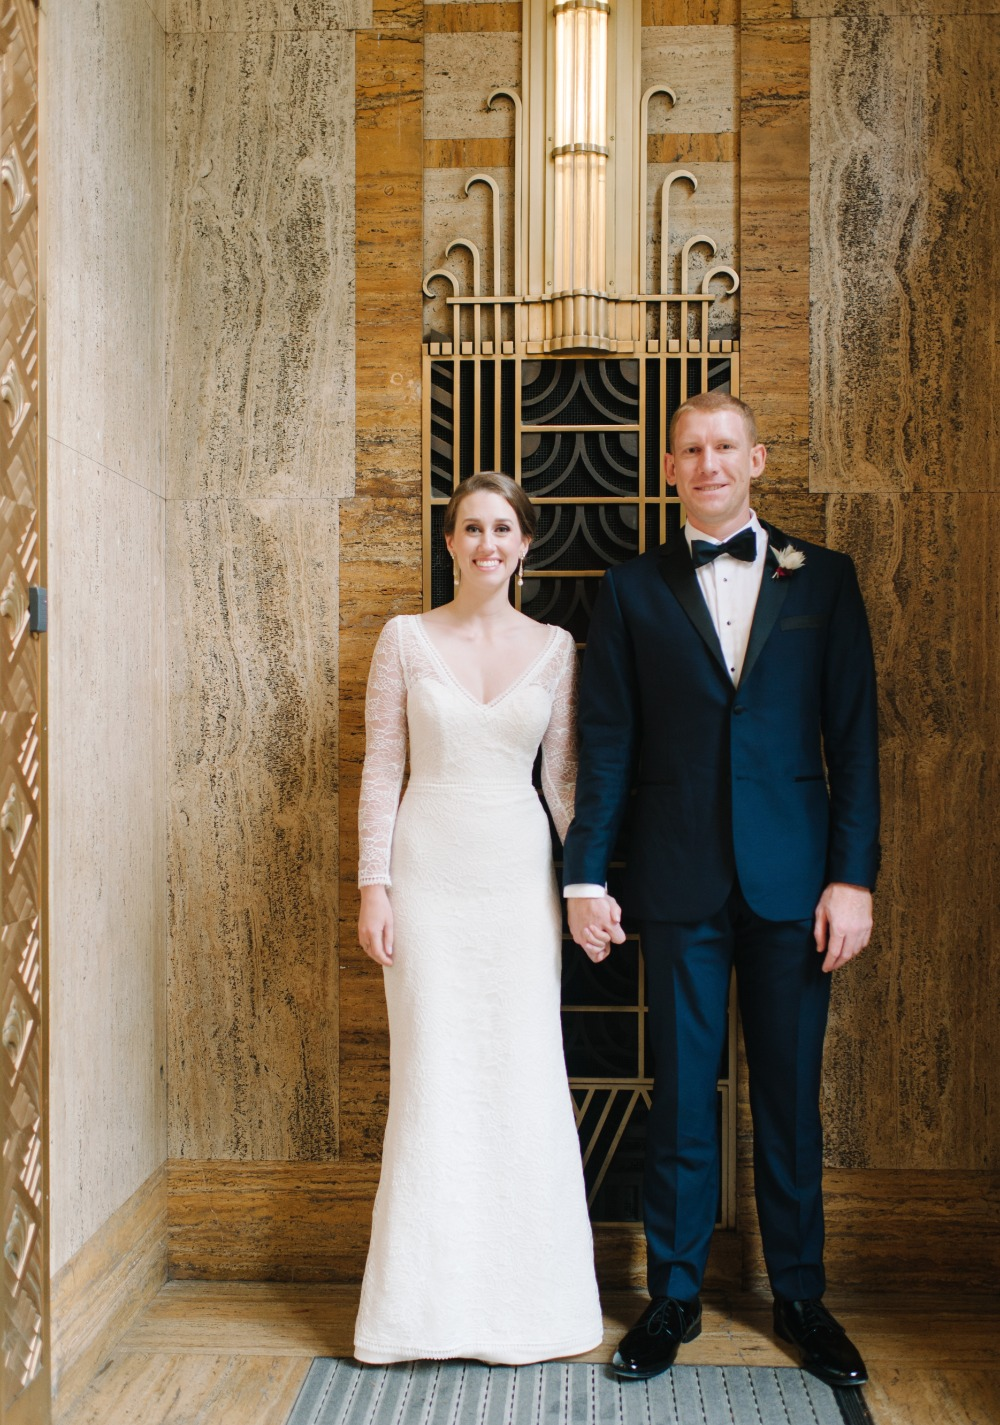 Gallery Great Gatsby This 1920s Art Deco Themed Wedding Is